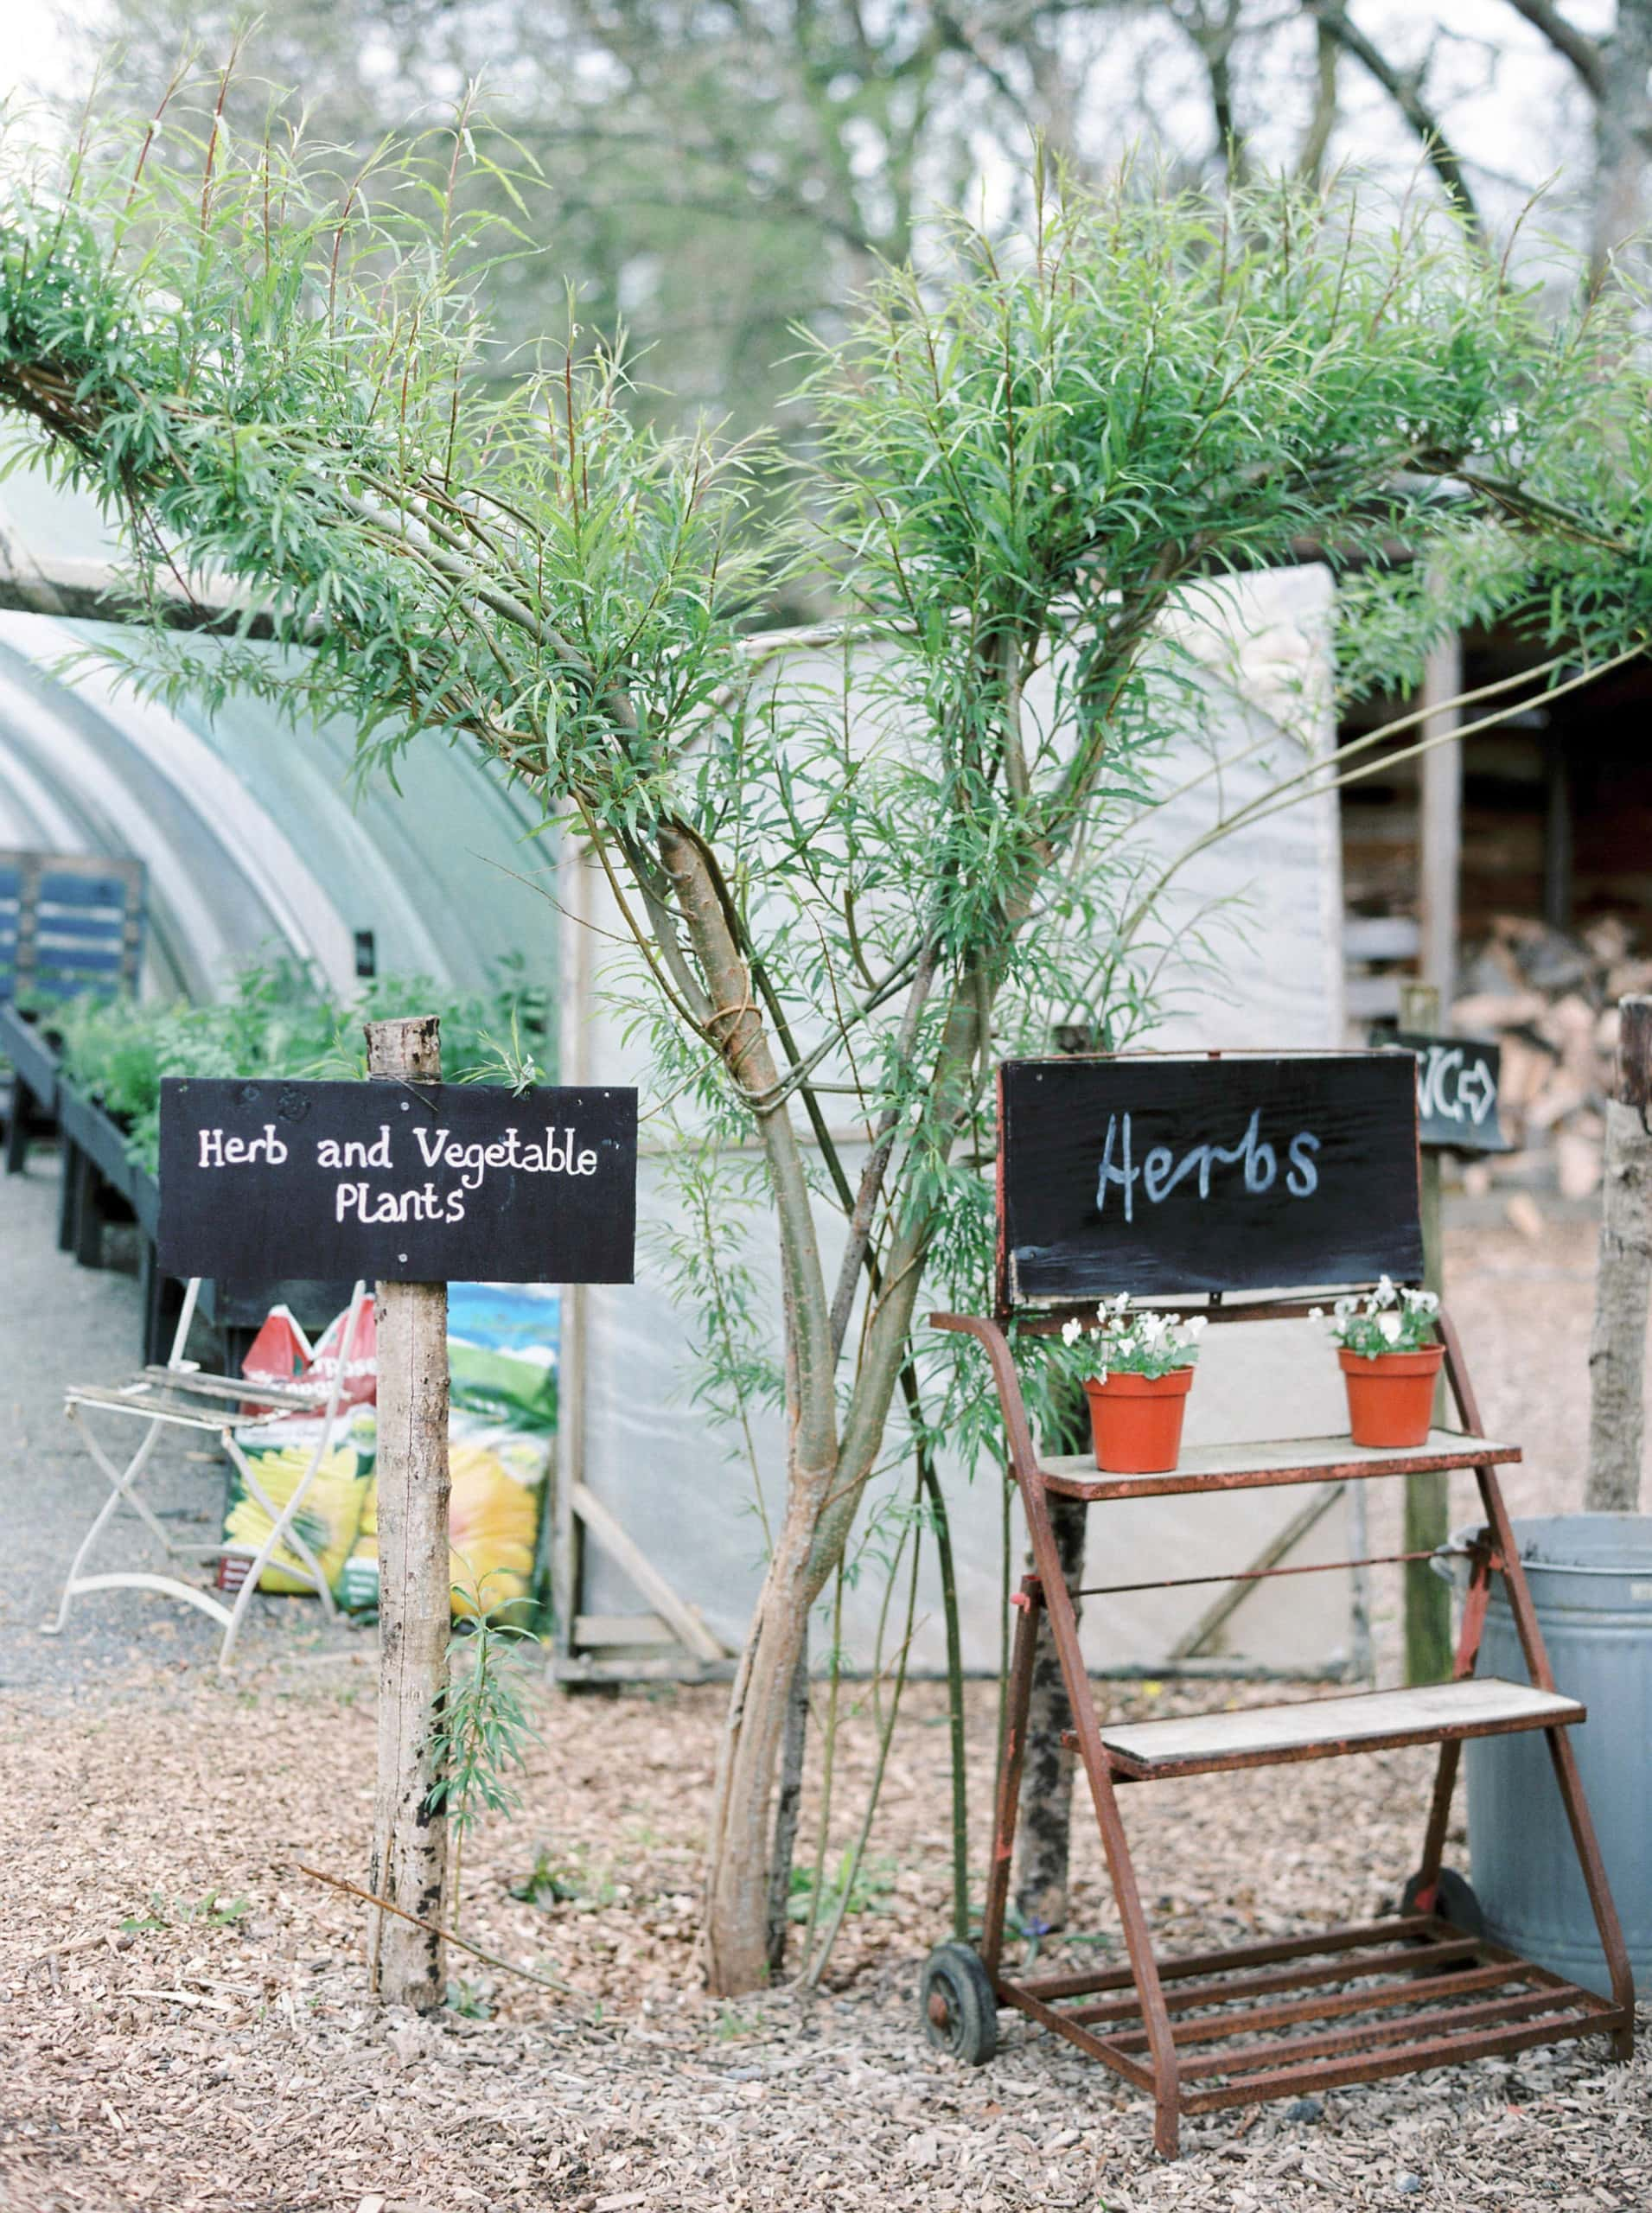 Greenhouse with herb sign